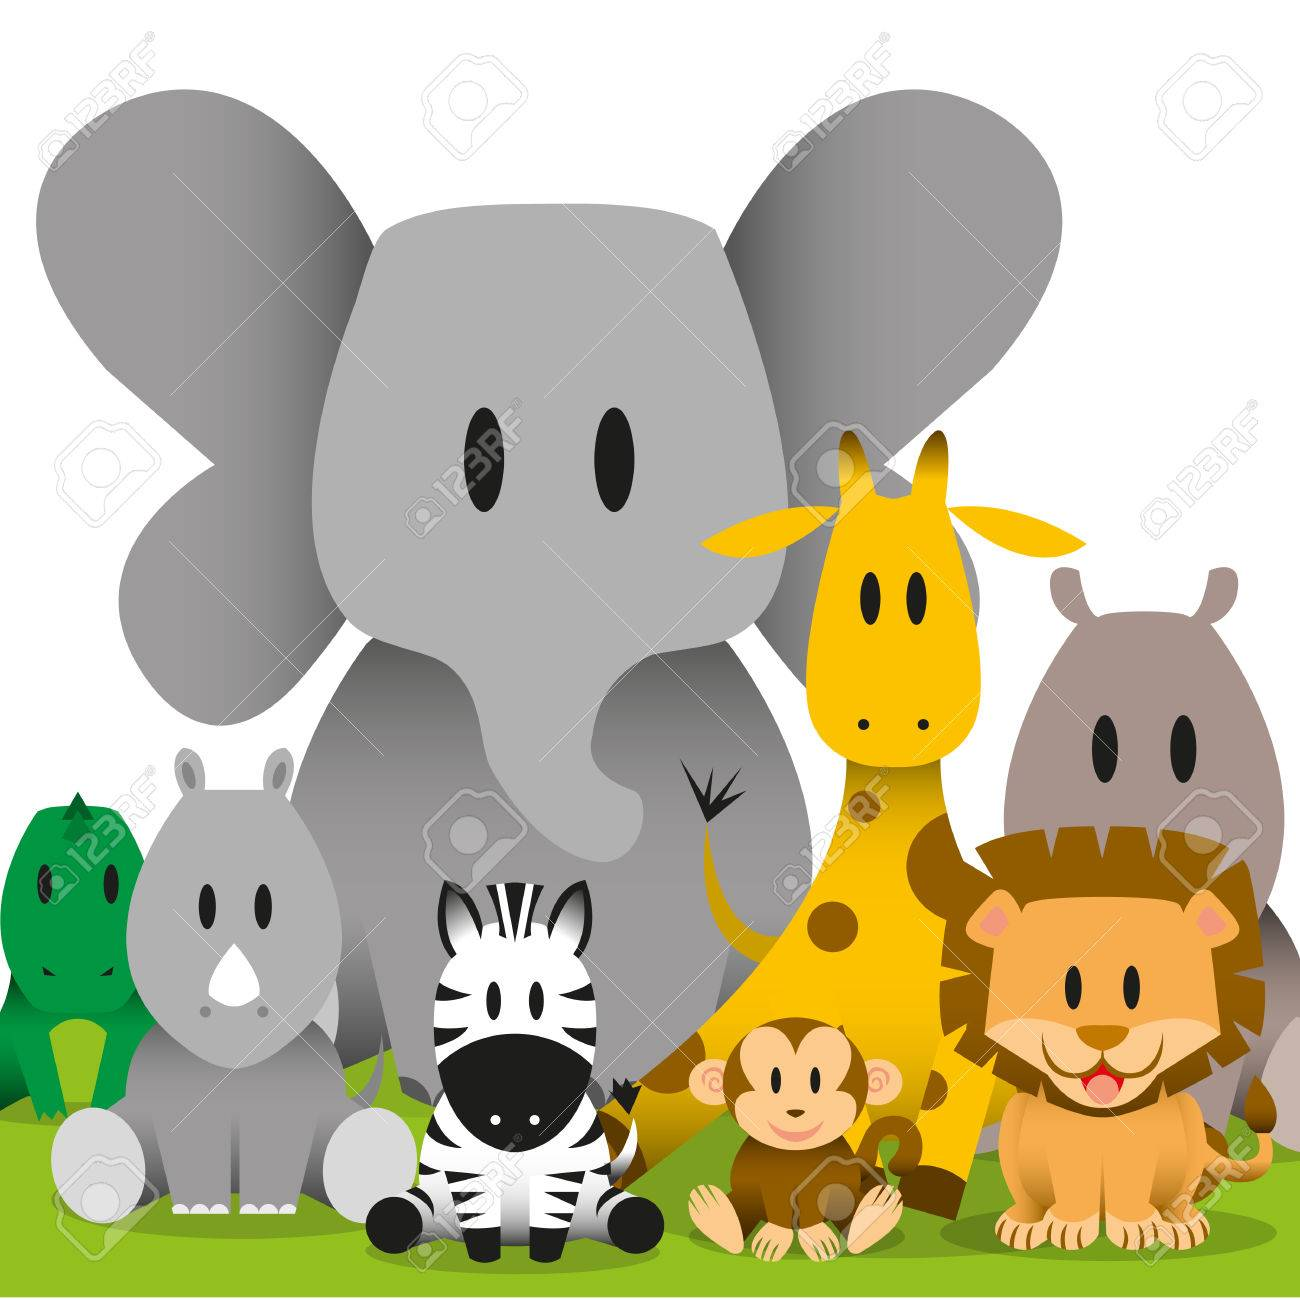 A Vector Cute Cartoon Wild Baby Animals Scene Royalty Free Cliparts Vectors And Stock Illustration Image 30333860